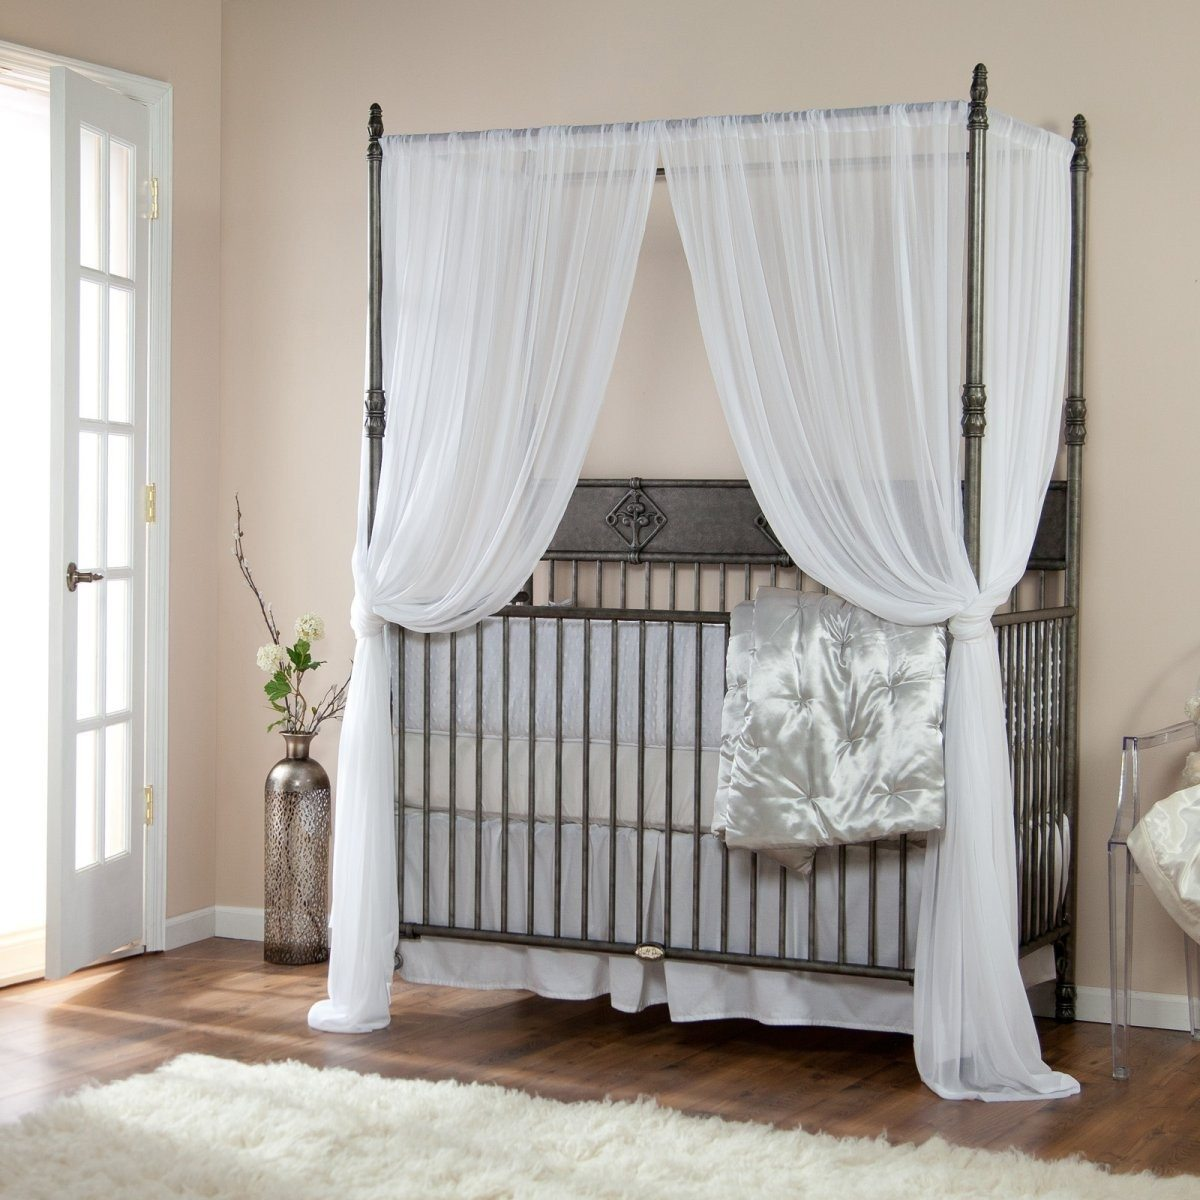 Colette Crib | Natart Crib Reviews | Restoration Hardware Cribs